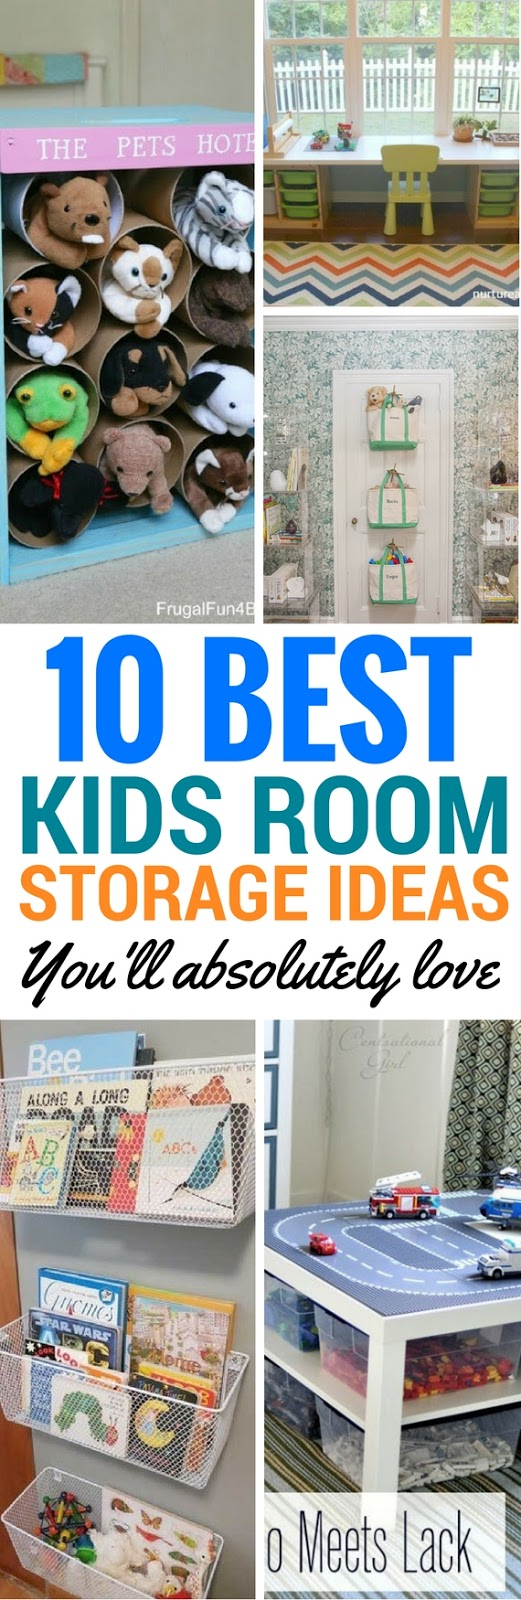 kids room ideas, kids room storage ideas, cheap kids room ideas, kids room organizing ideas, kids room ideas on a budget